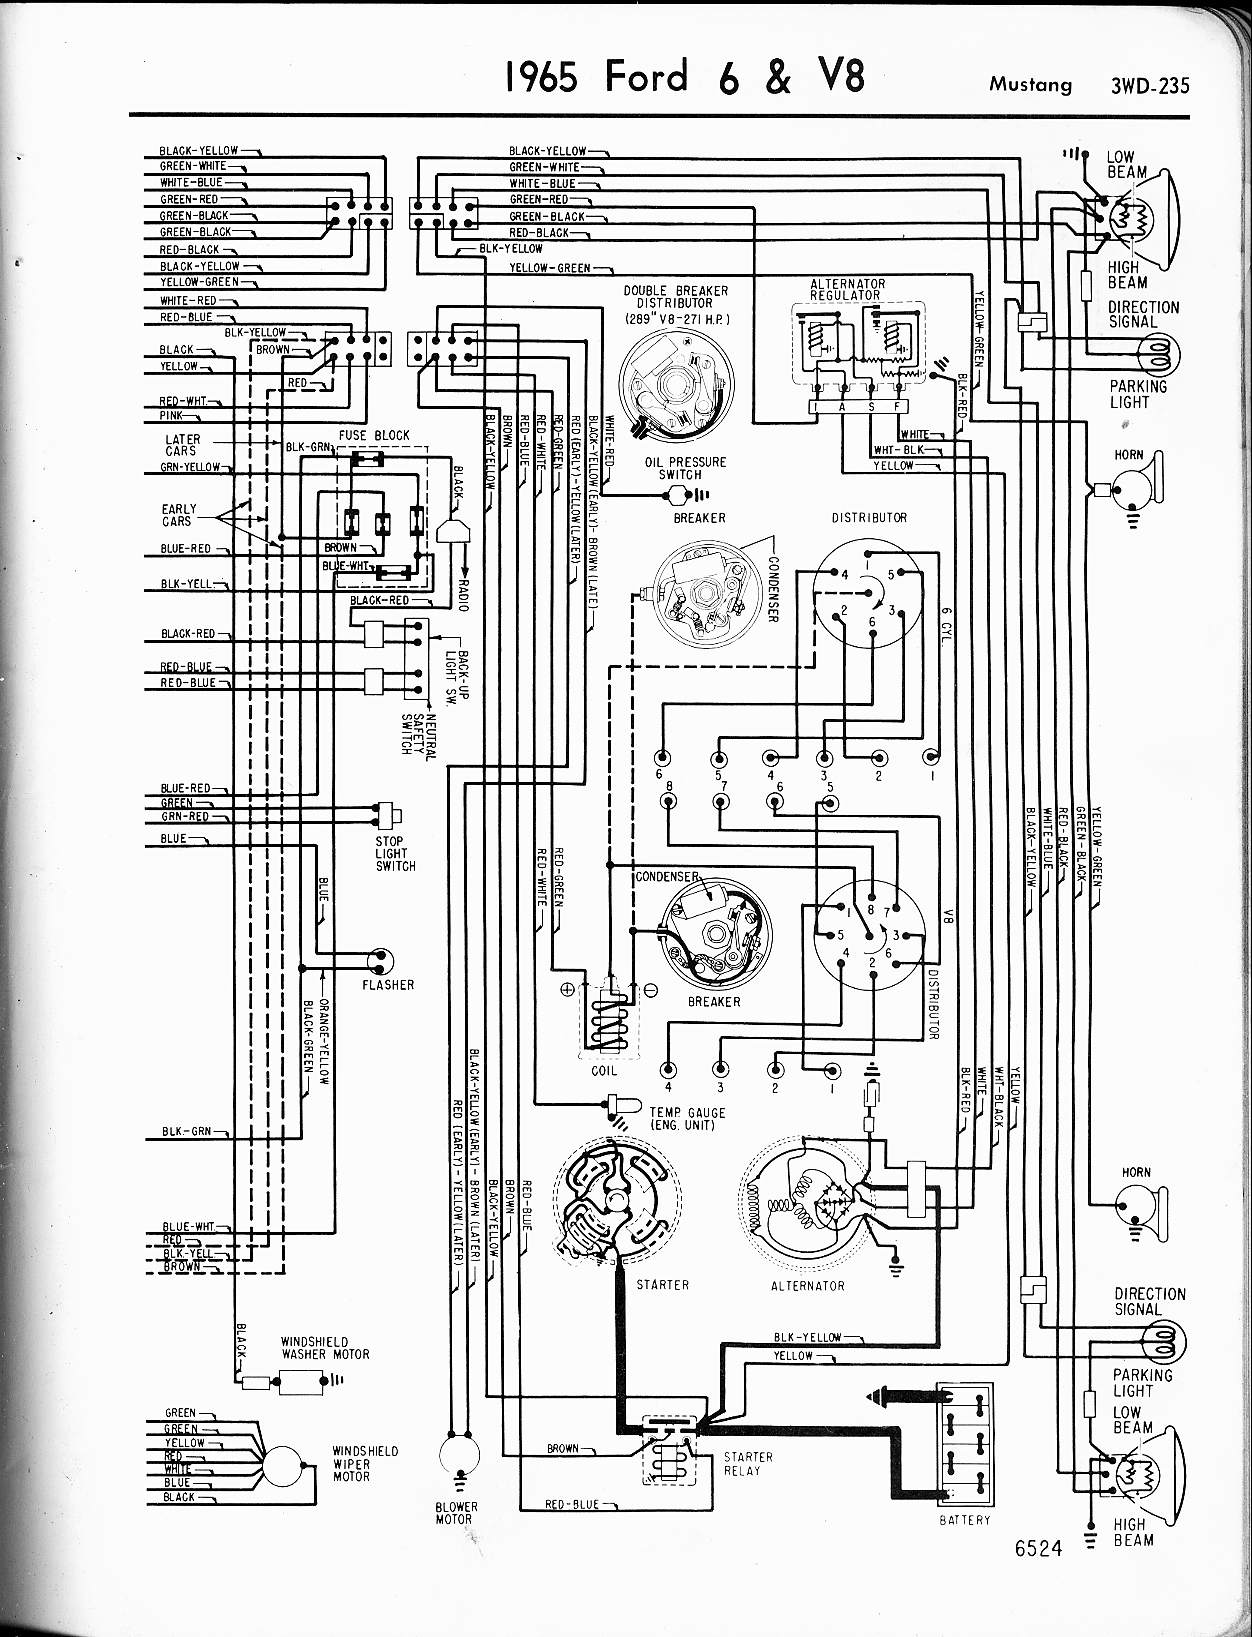 MWire5765 235 100 [ mustang horn wiring diagram ] 63 impala fuse box on 63 mustang wiring harness diagram at crackthecode.co